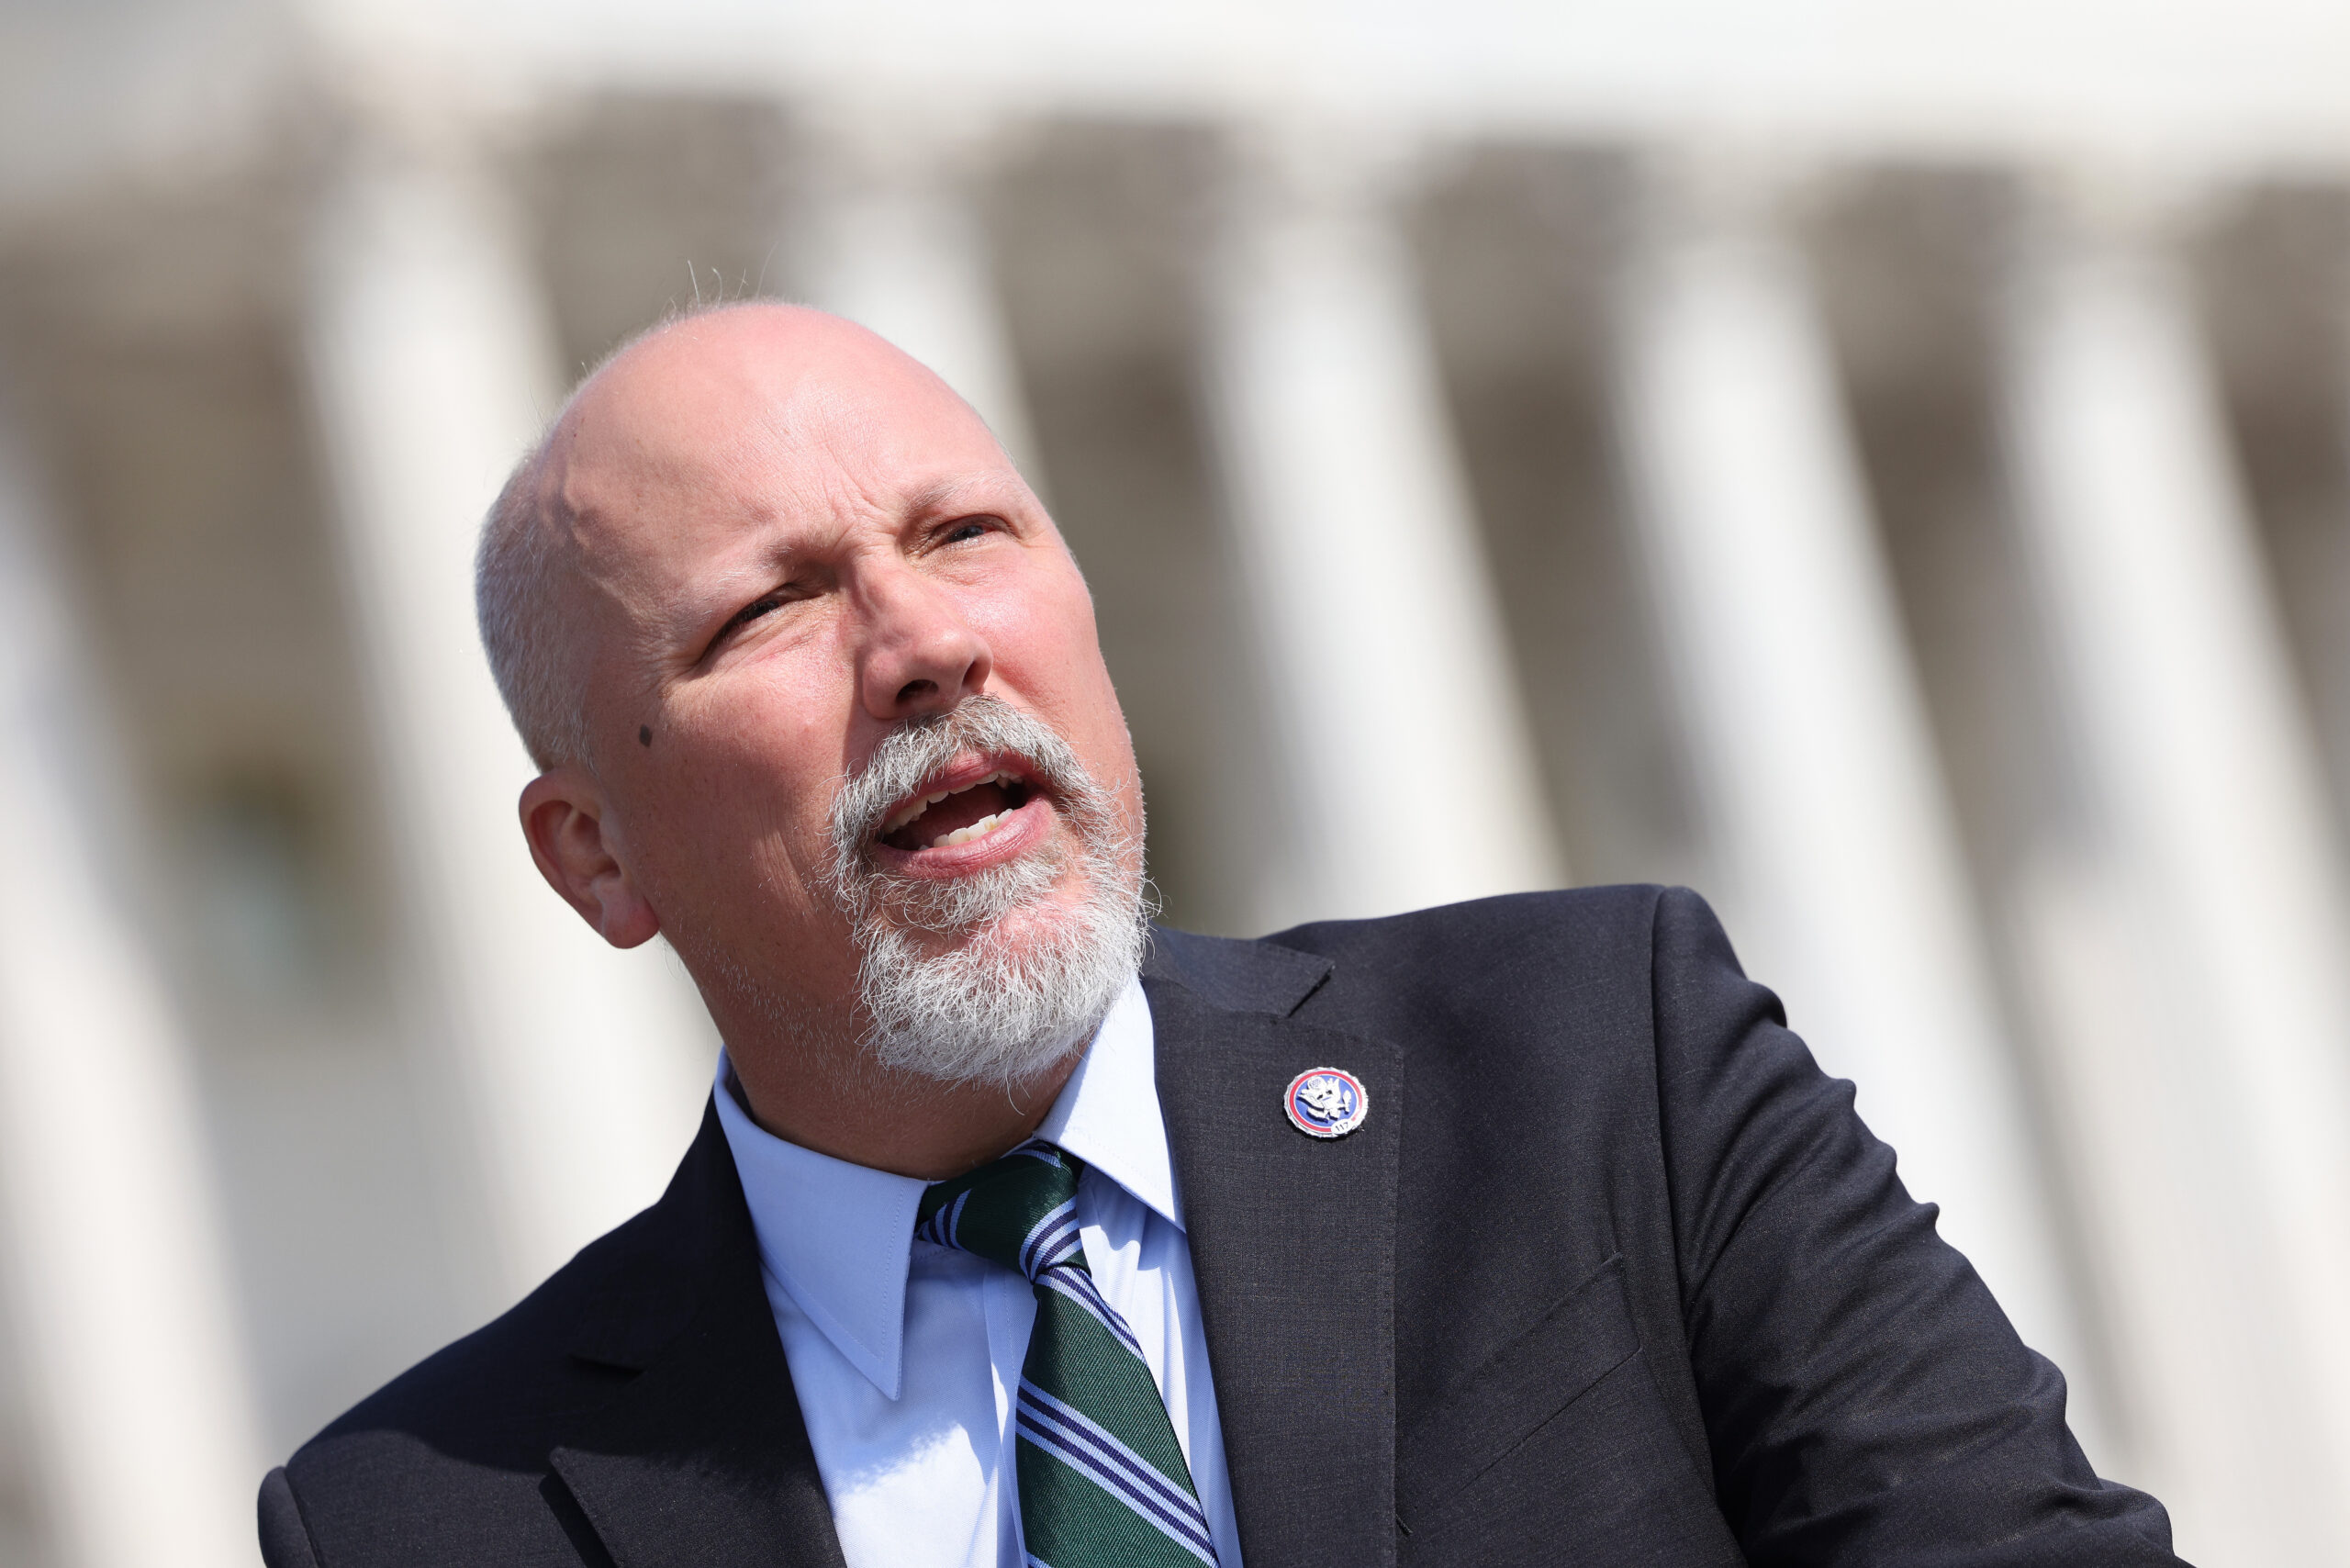 Rep. Chip Roy (R-Texas) speaks at a press conference in Washington, DC. (Photo by Kevin Dietsch/Getty Images)